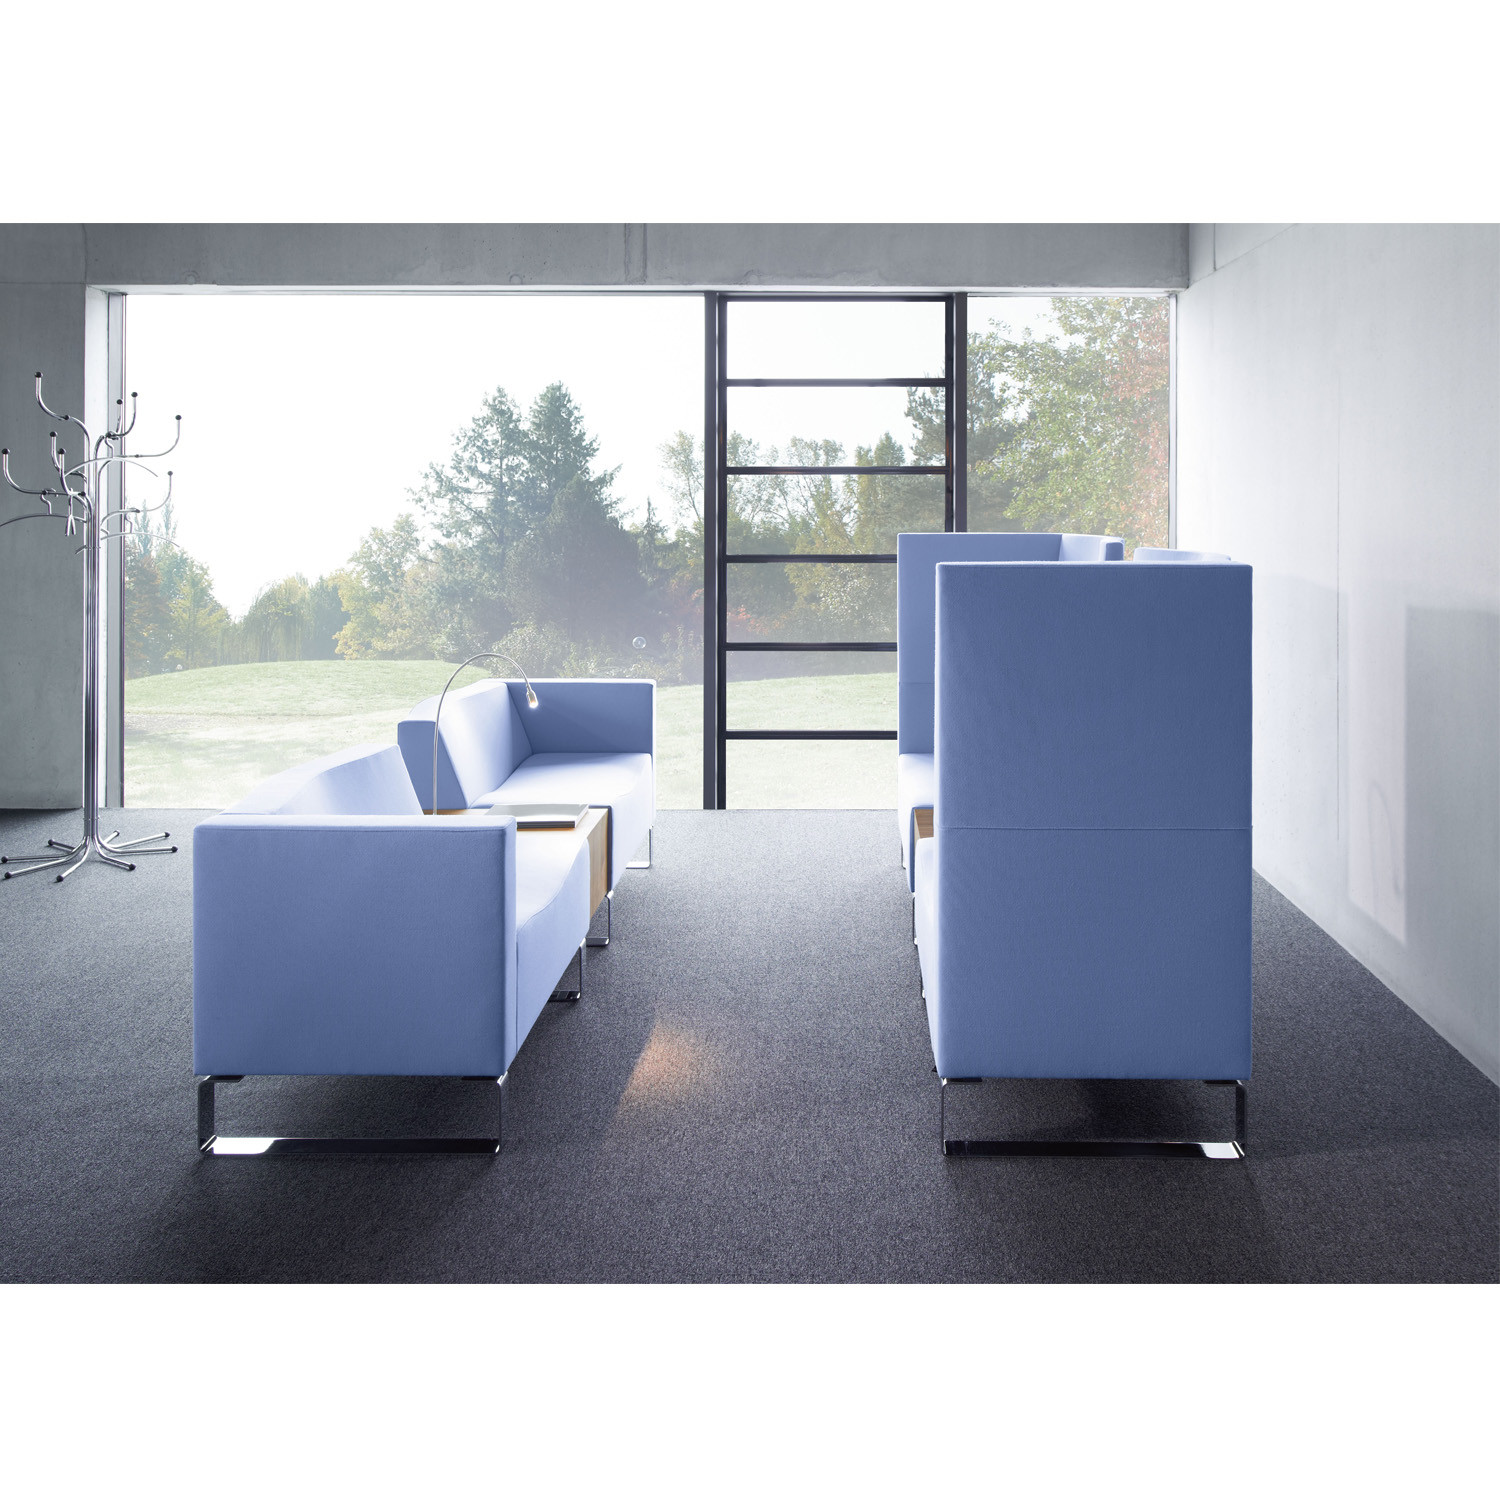 Concept C HB Sofas from Klober